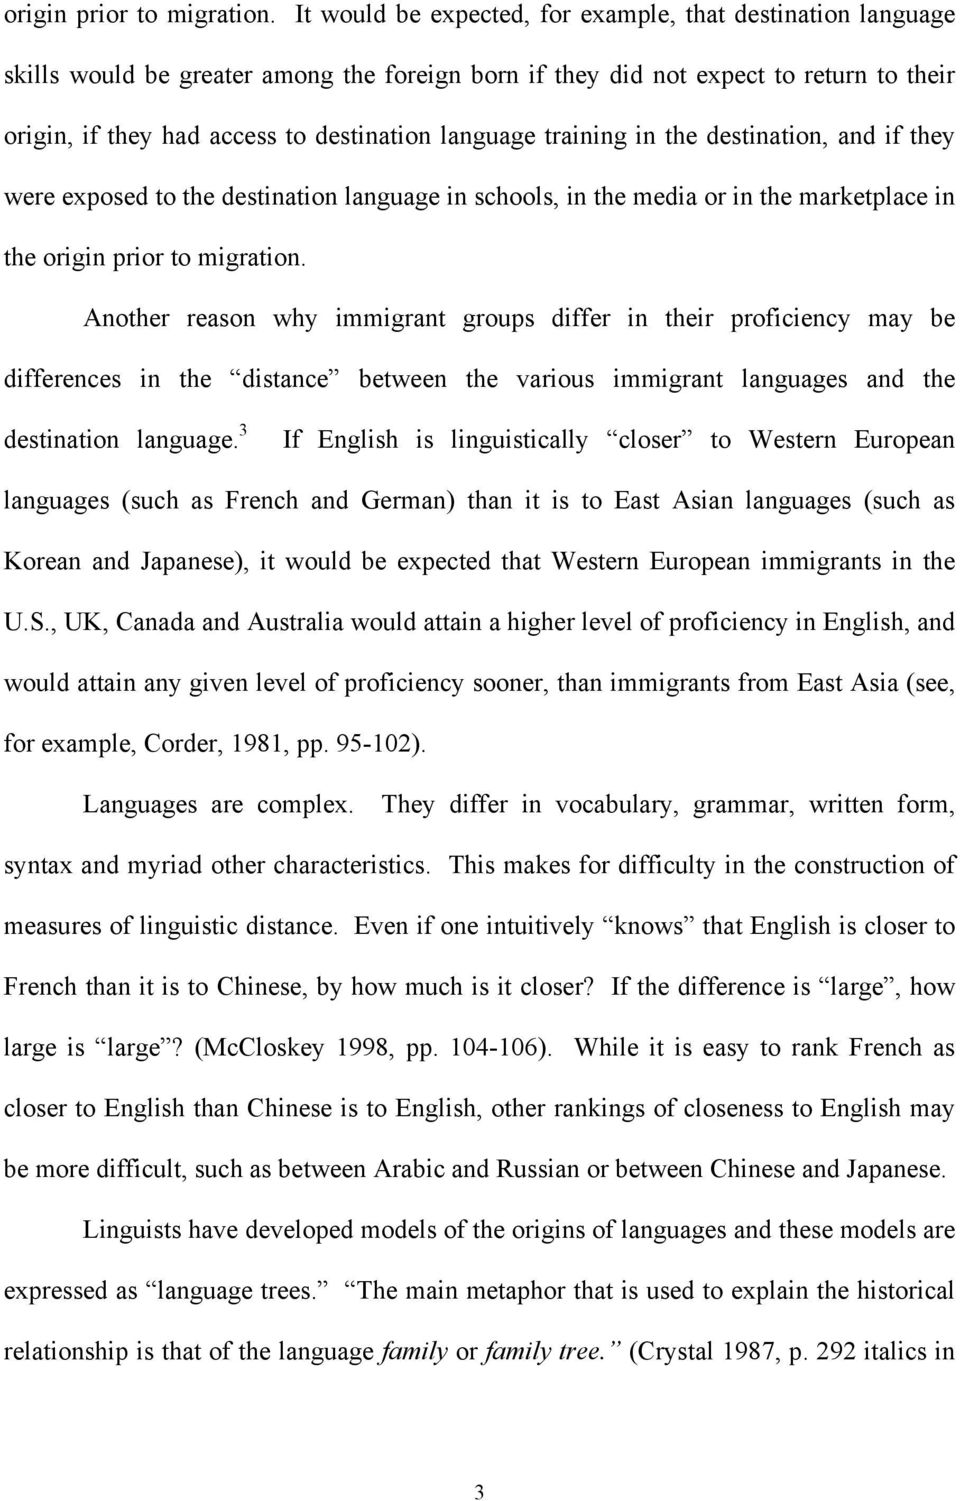 language training in the destination, and if they were exposed to the destination language in schools, in the media or in the marketplace in the  Another reason why immigrant groups differ in their